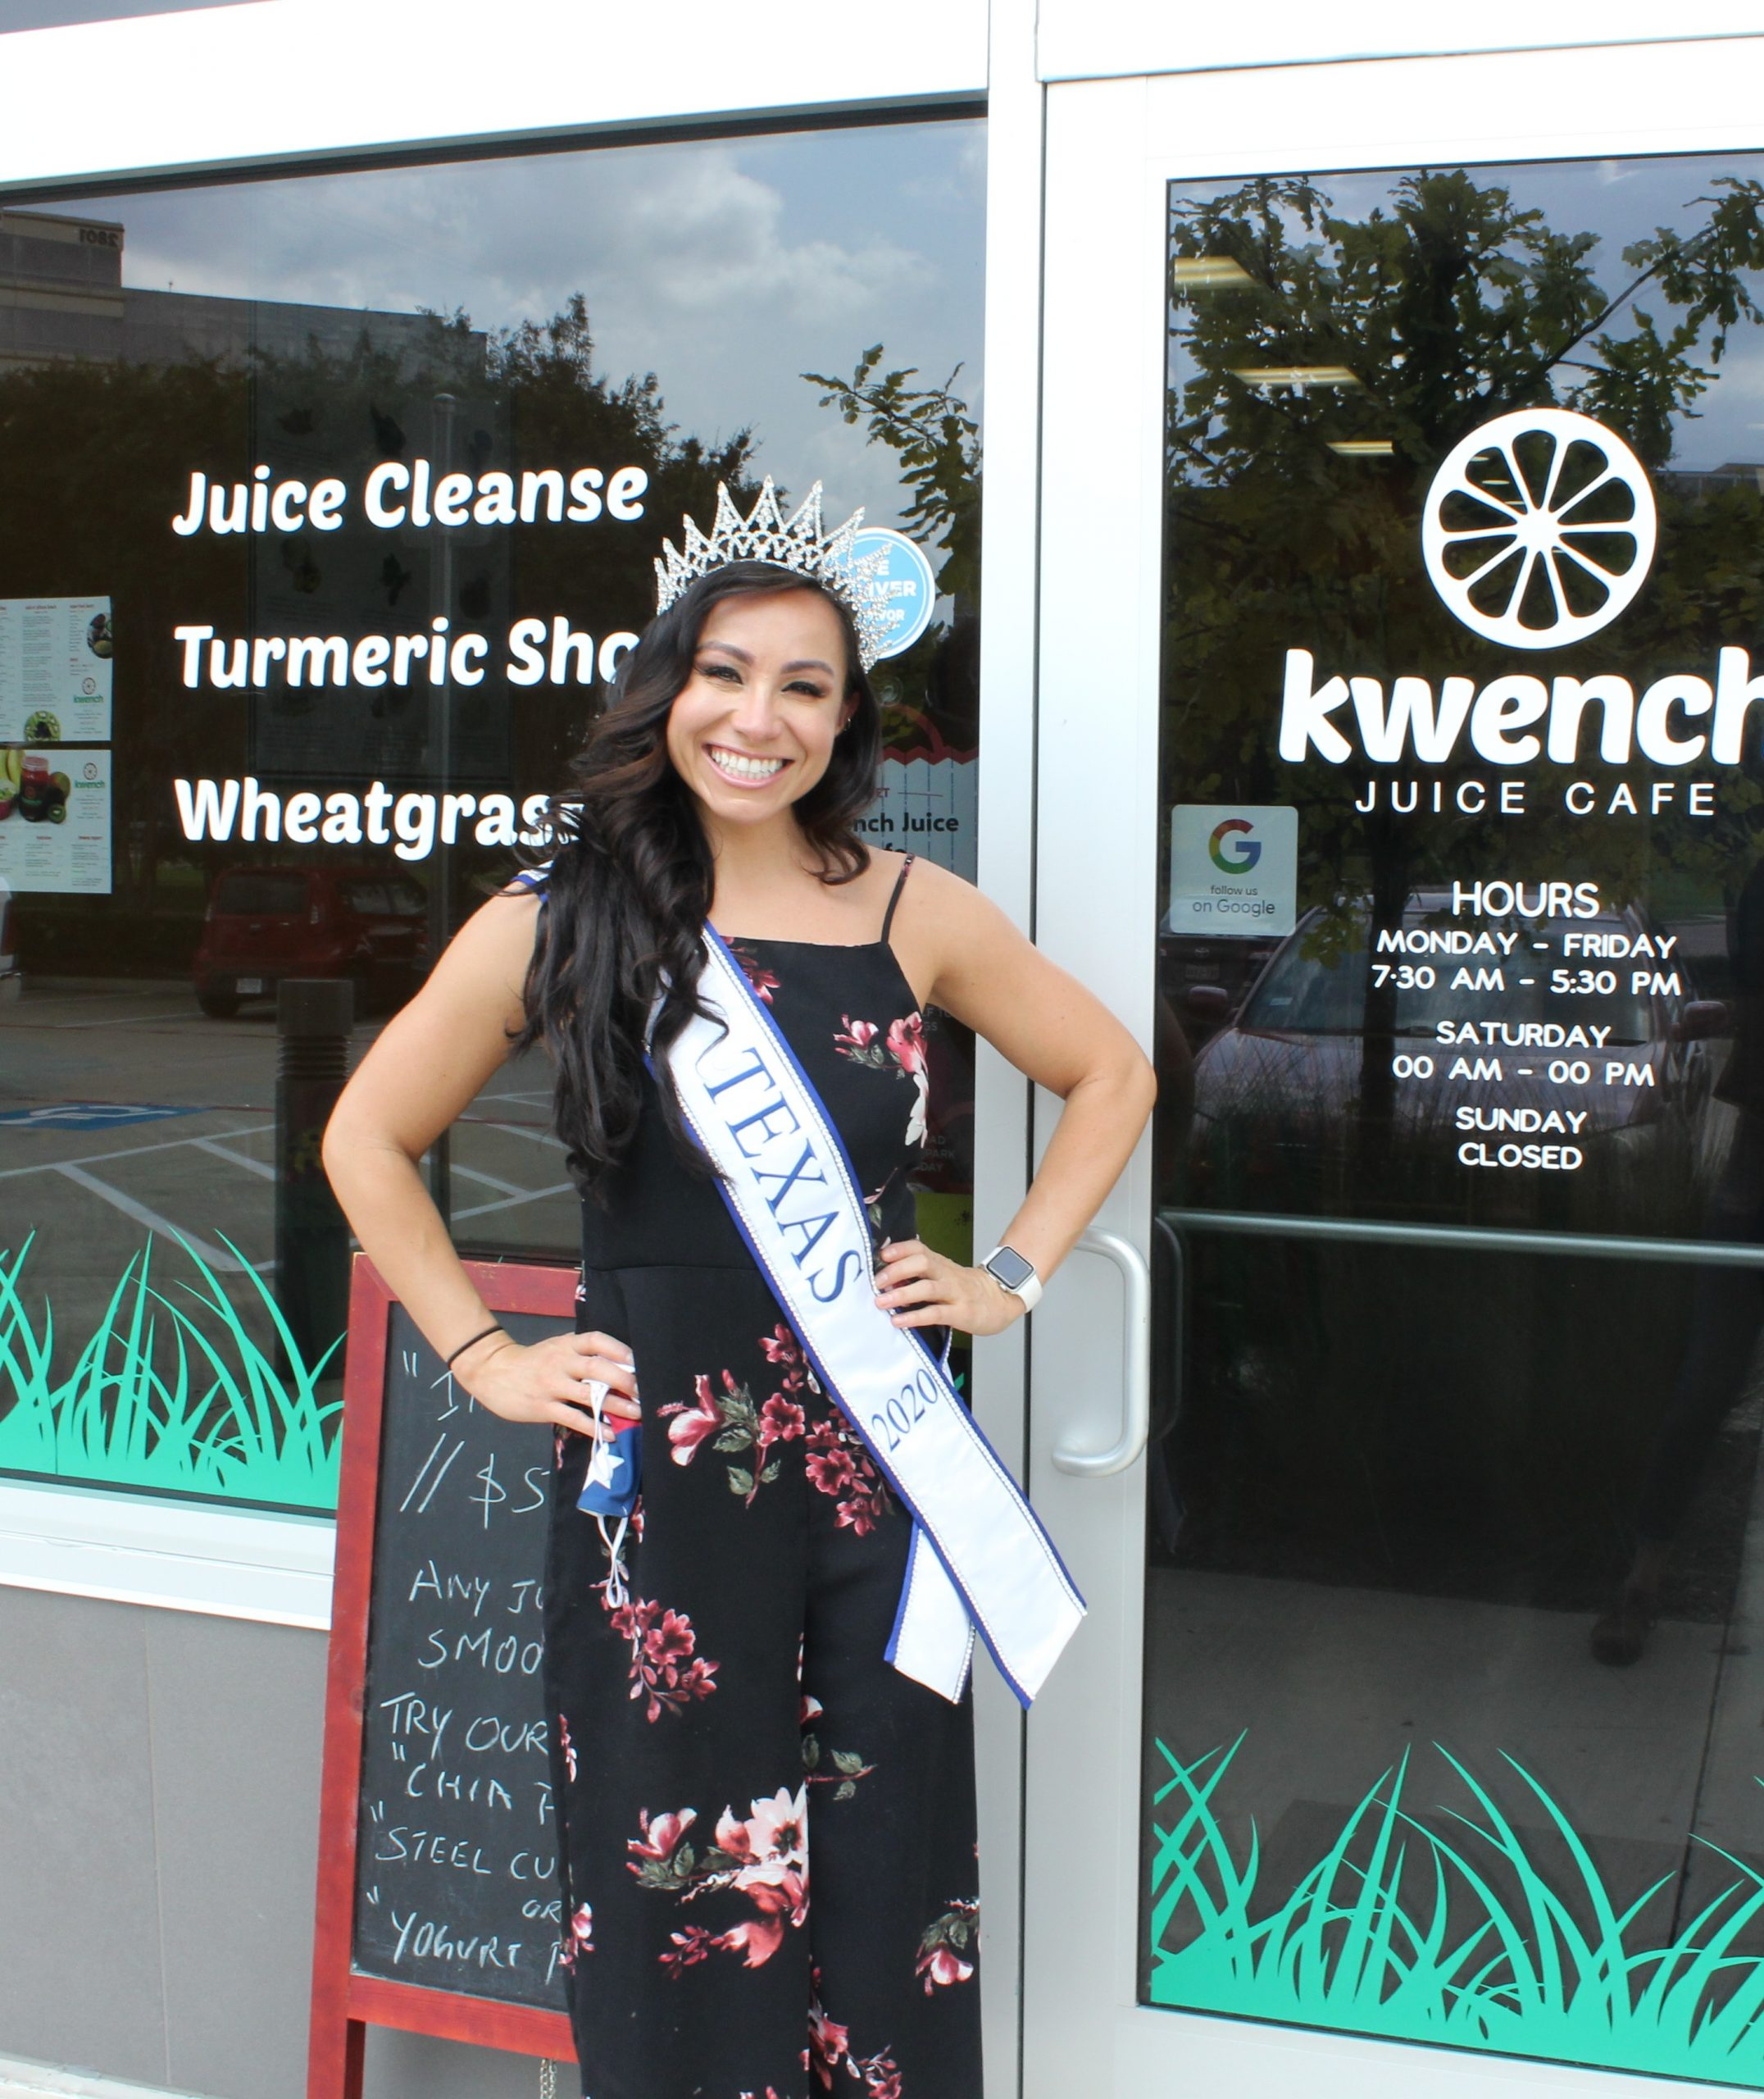 Ms. Texas 2020 Visits Frisco Cafe, Advocates for Mental Health and Cleaner Oceans